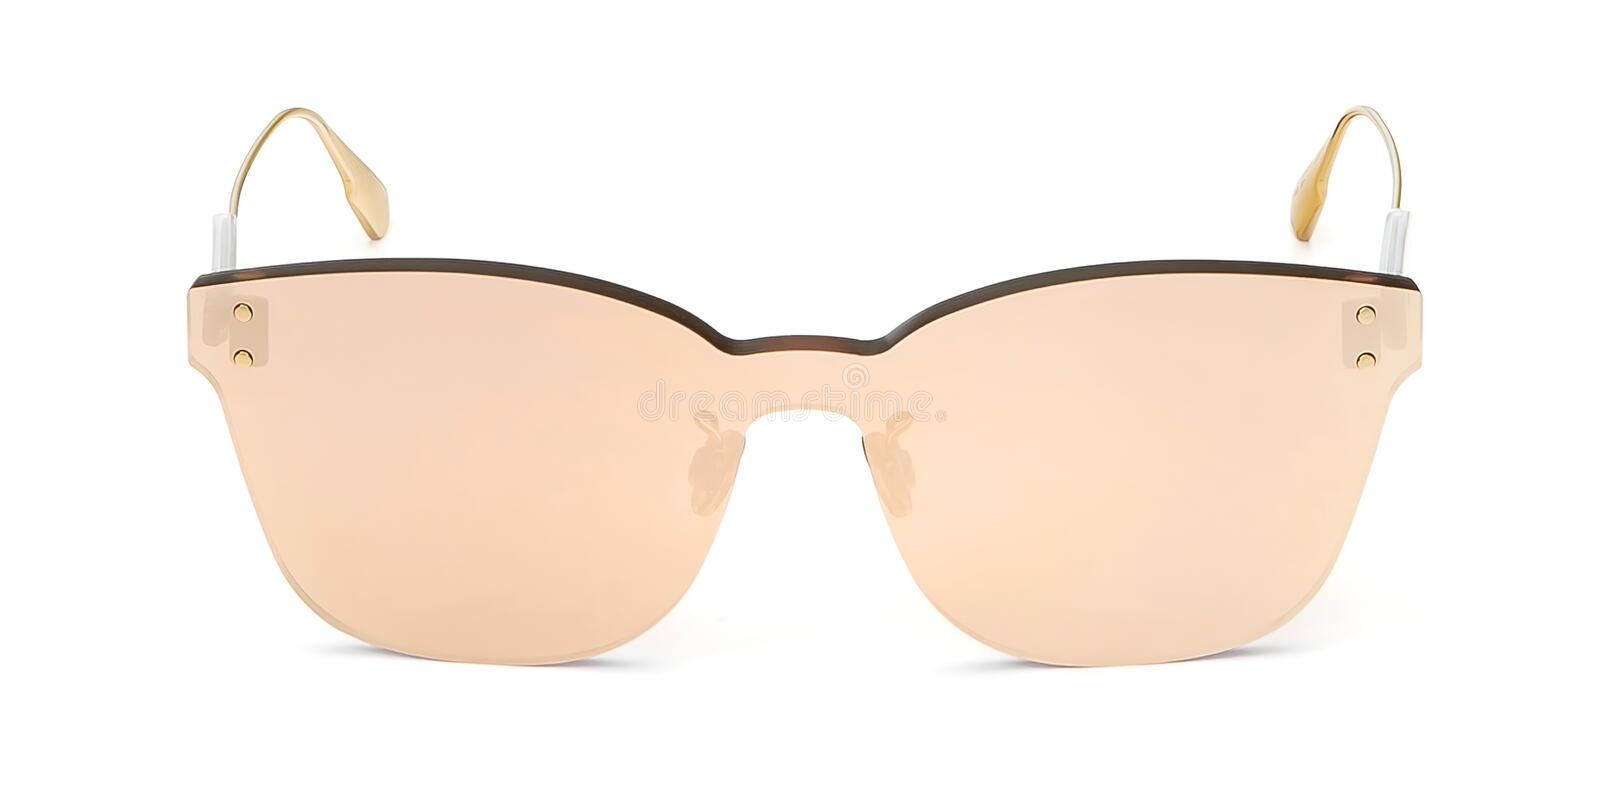 Summer front view Sunglasses isolated on white background. Mirror eyeglasses mockup for your design royalty free stock images